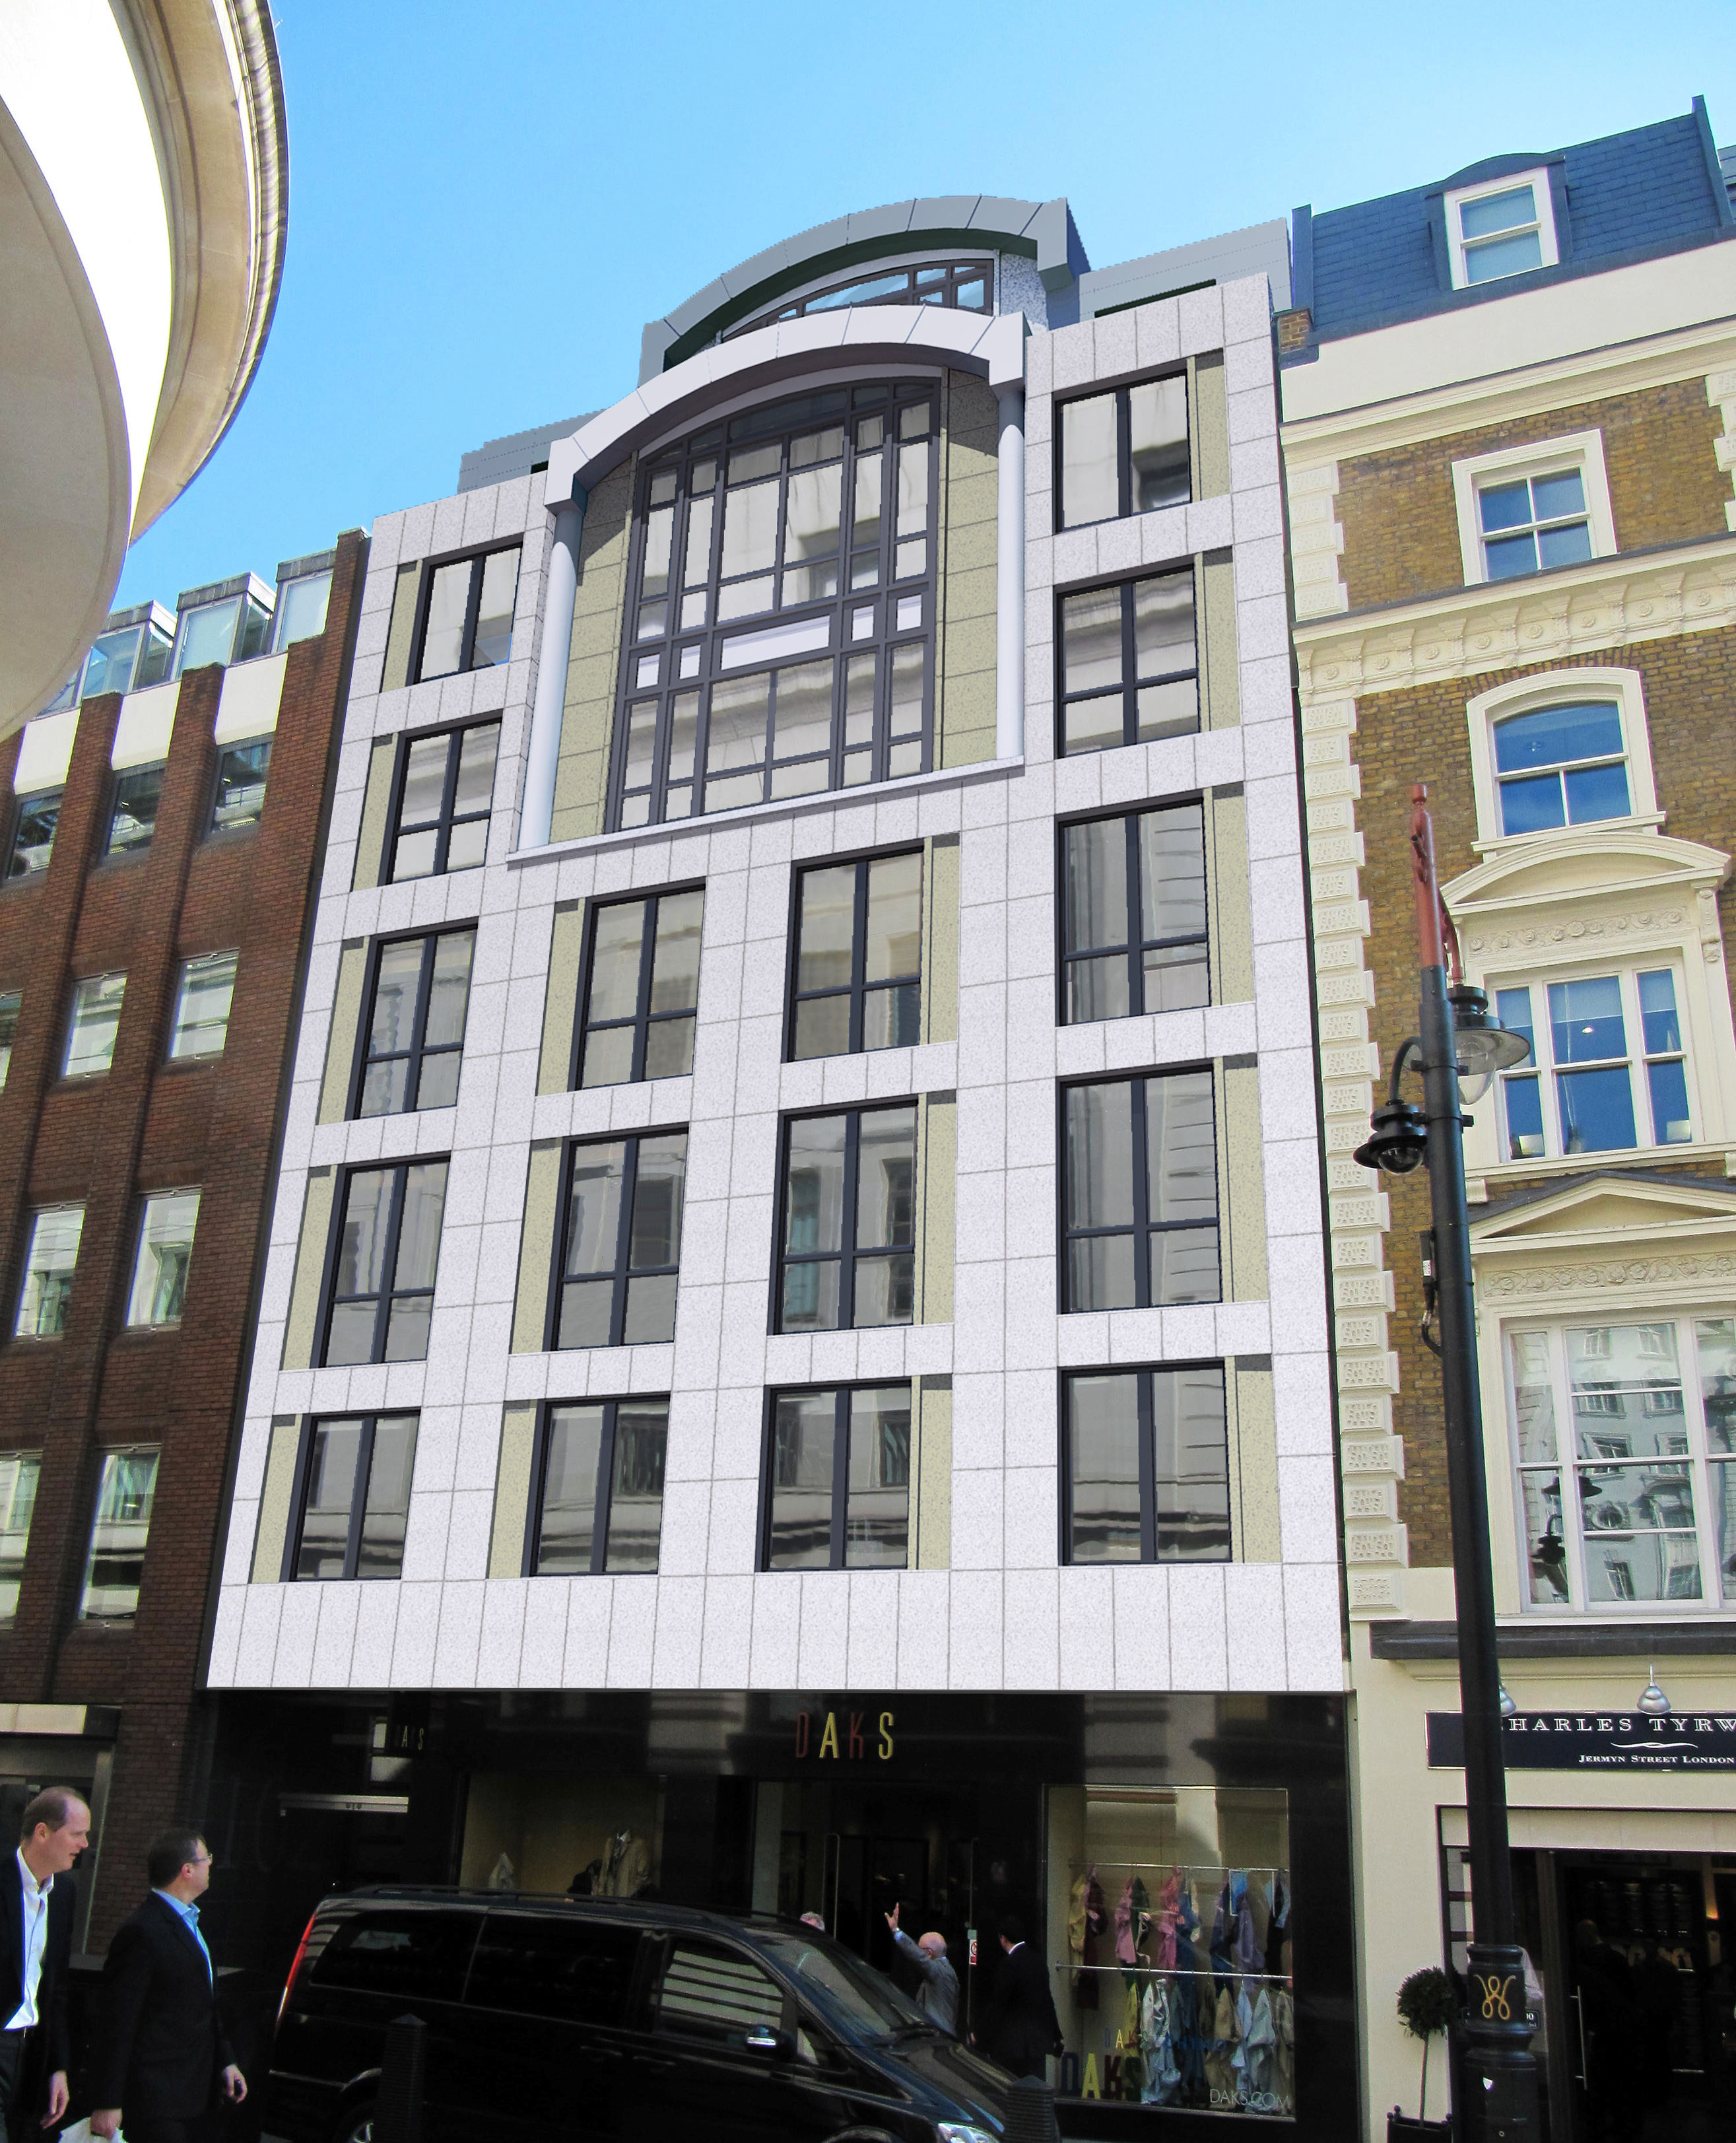 Planning Permission received for Jermyn Street development